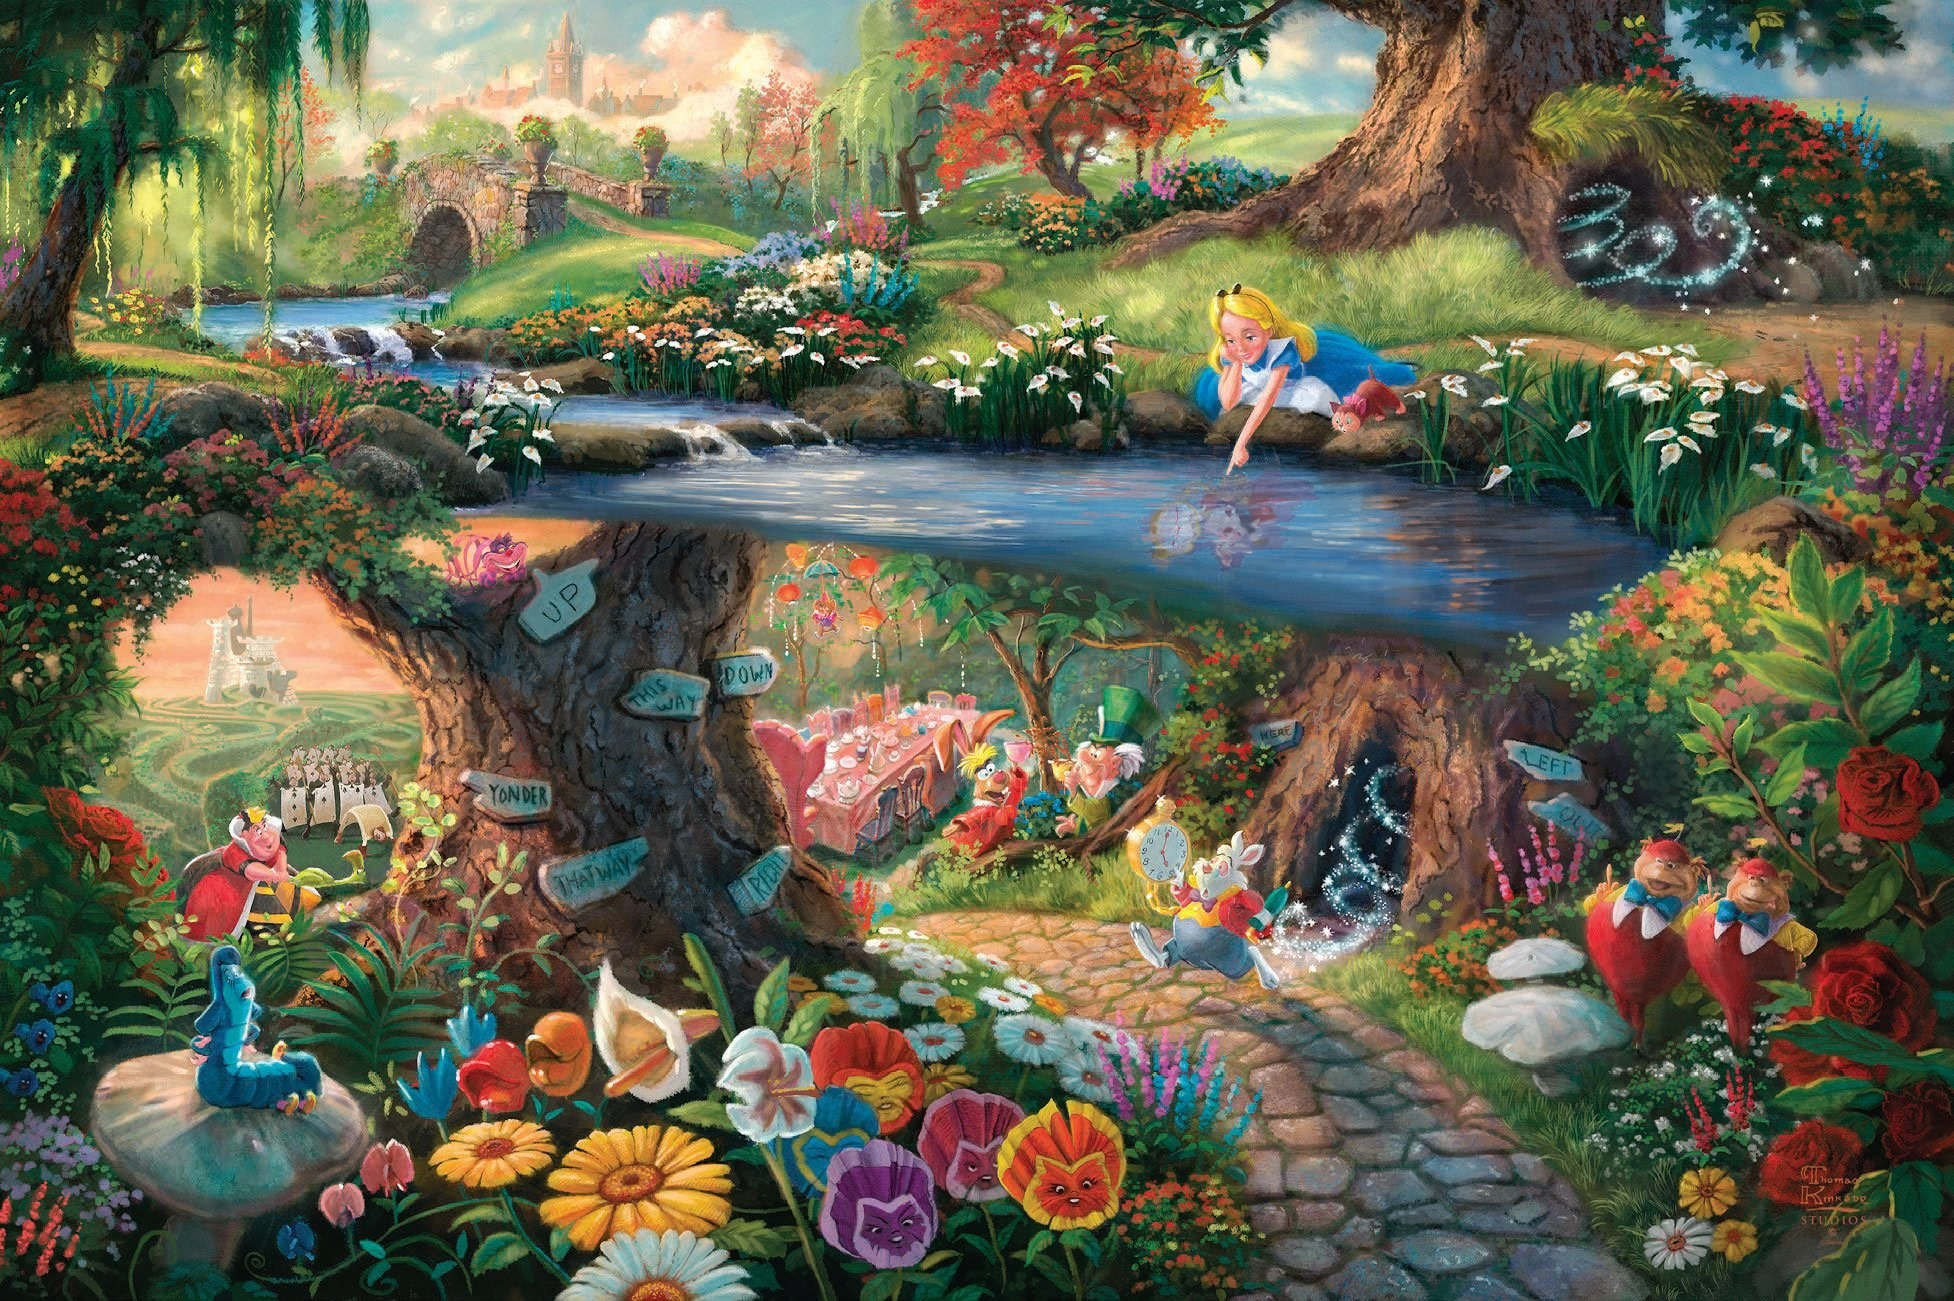 1954x1301 ... alice in wonderland hd wallpaper  798 kb by wieshawn ...